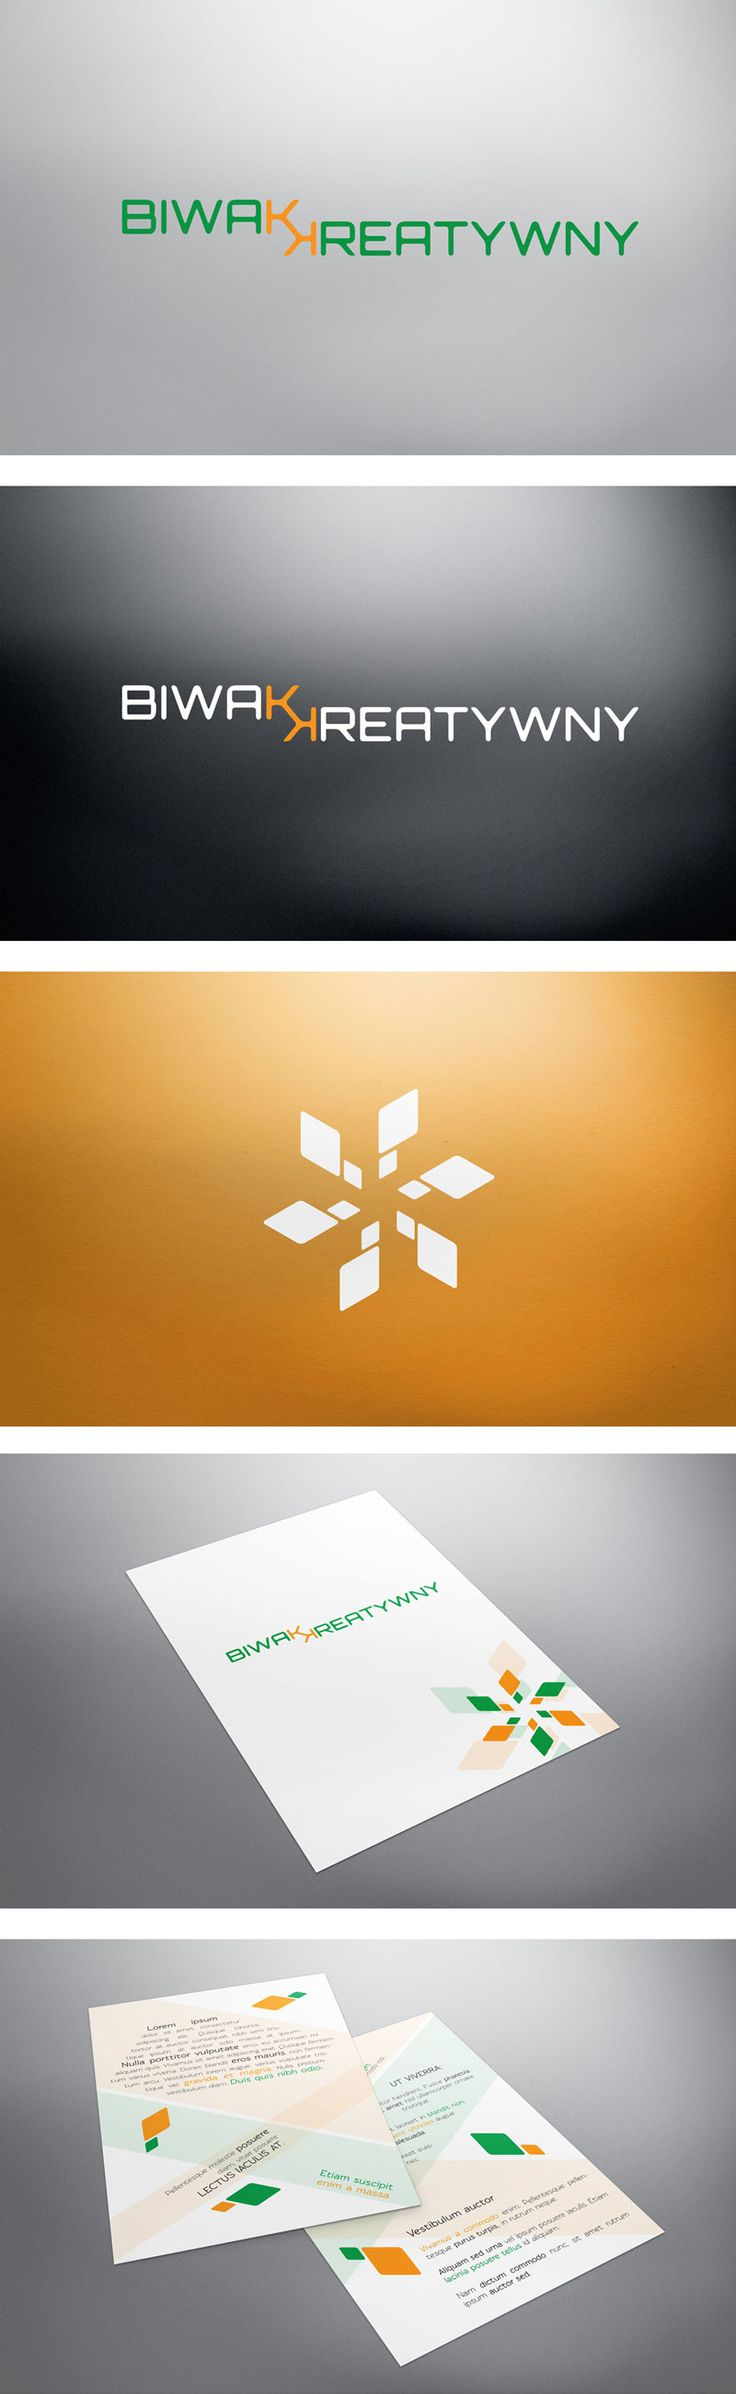 Visual Identity project designed for local Scouting event - creative education workshops.